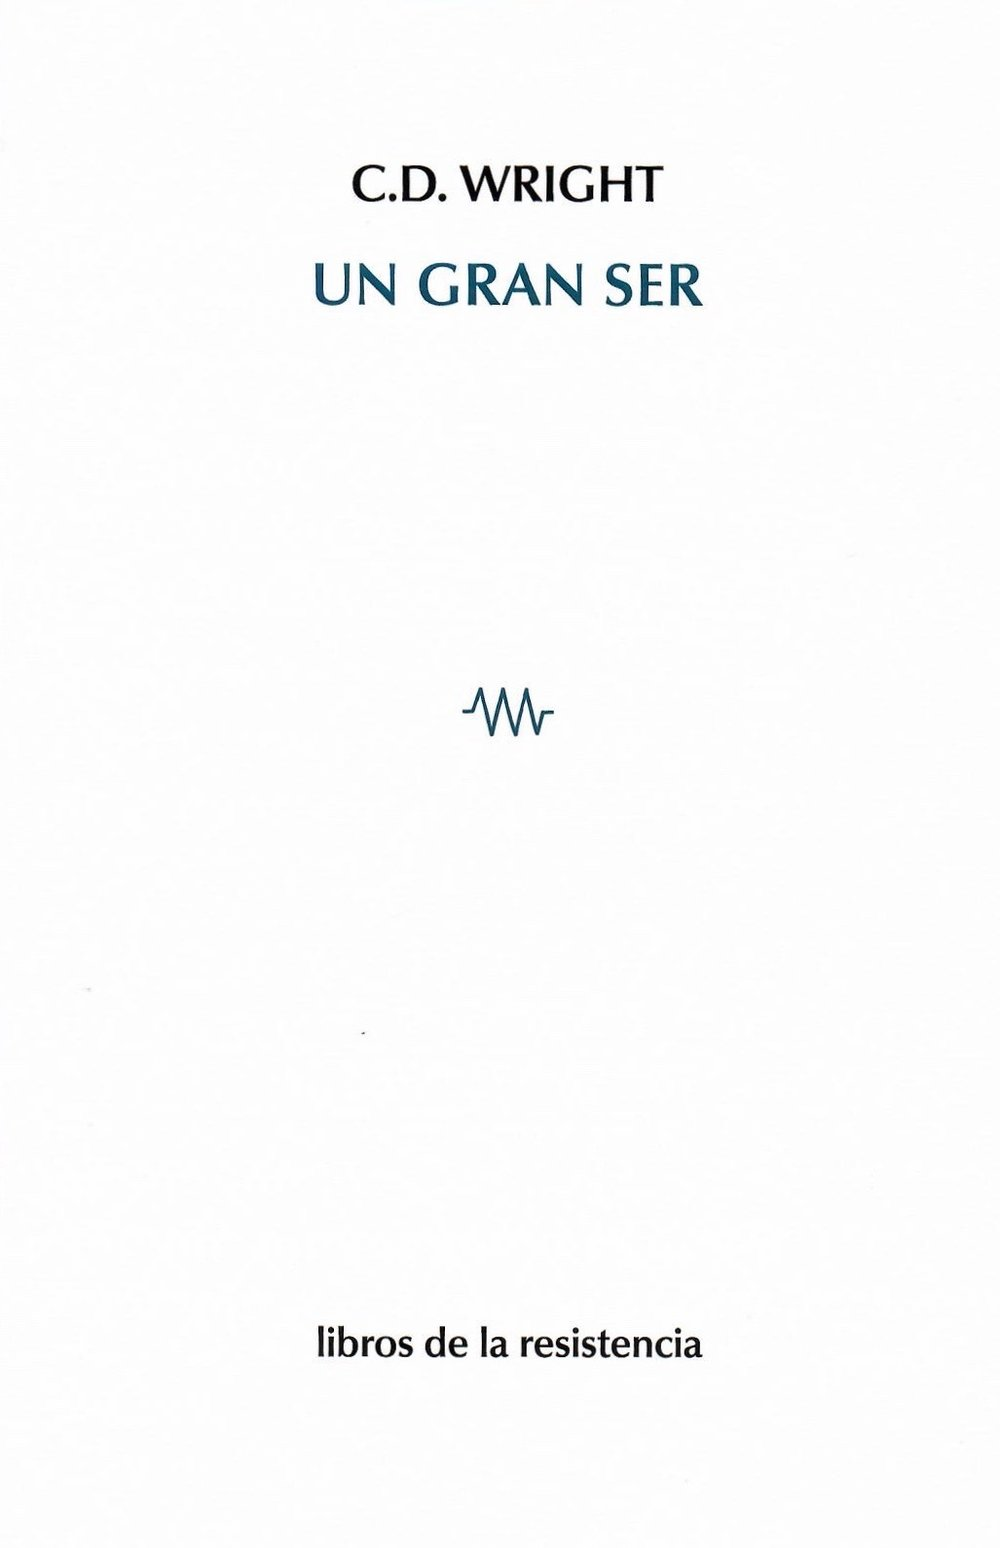 Translated into Spanish by Antonio Alarcón Libros de Resistencia (Madrid, 2018)